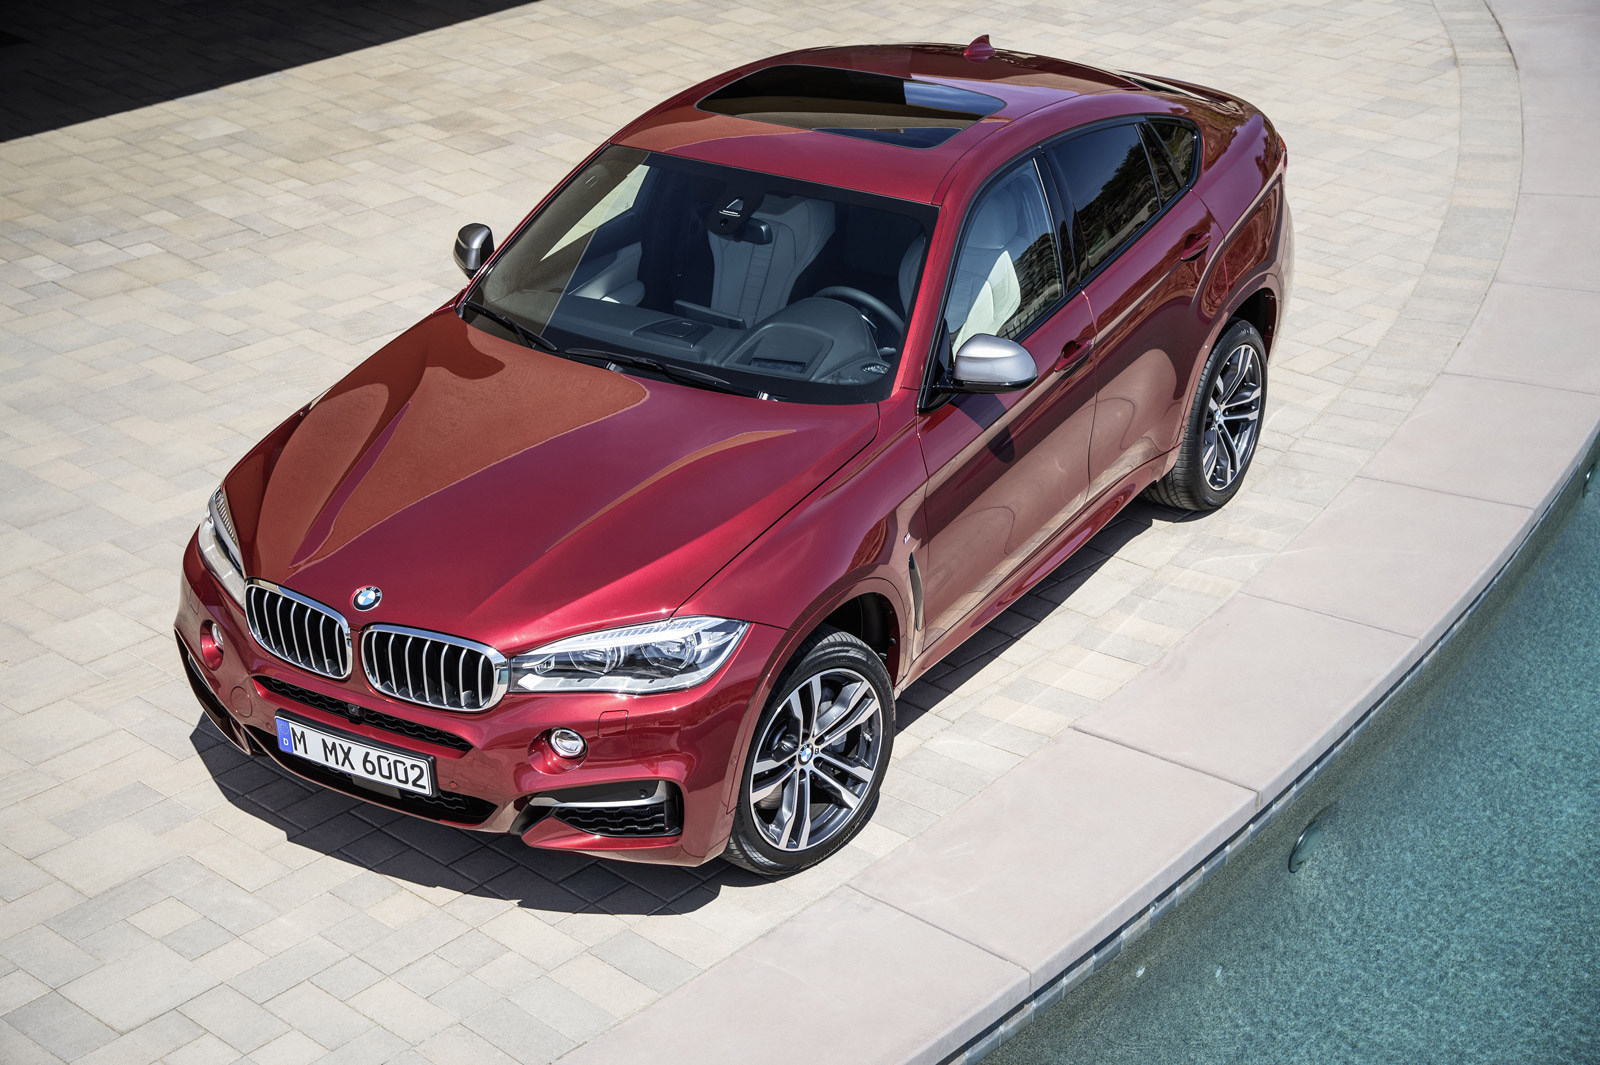 First Look At 2015 Bmw X6 S M Sport Package And X6 M50d